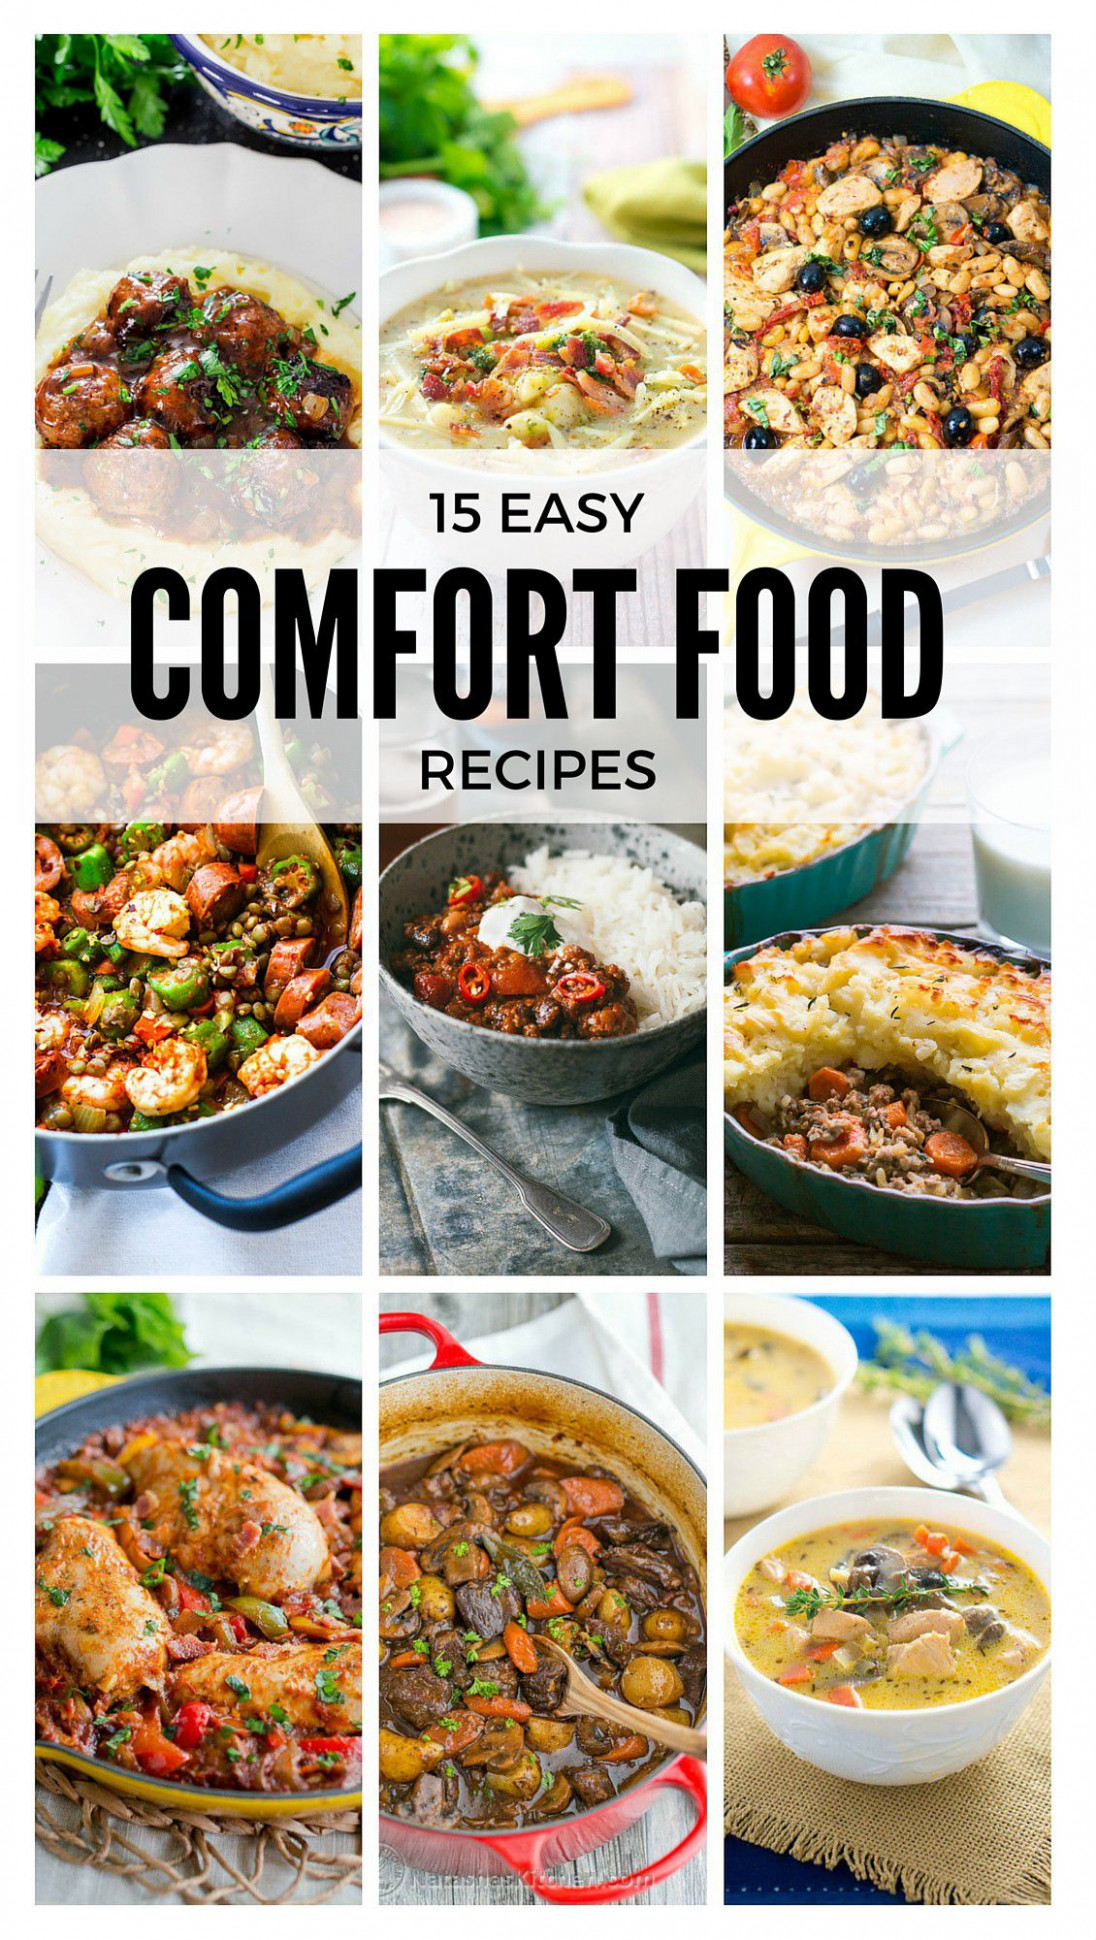 14 Easy Comfort Food Recipes | Delicious Meets Healthy - easy comfort food recipes